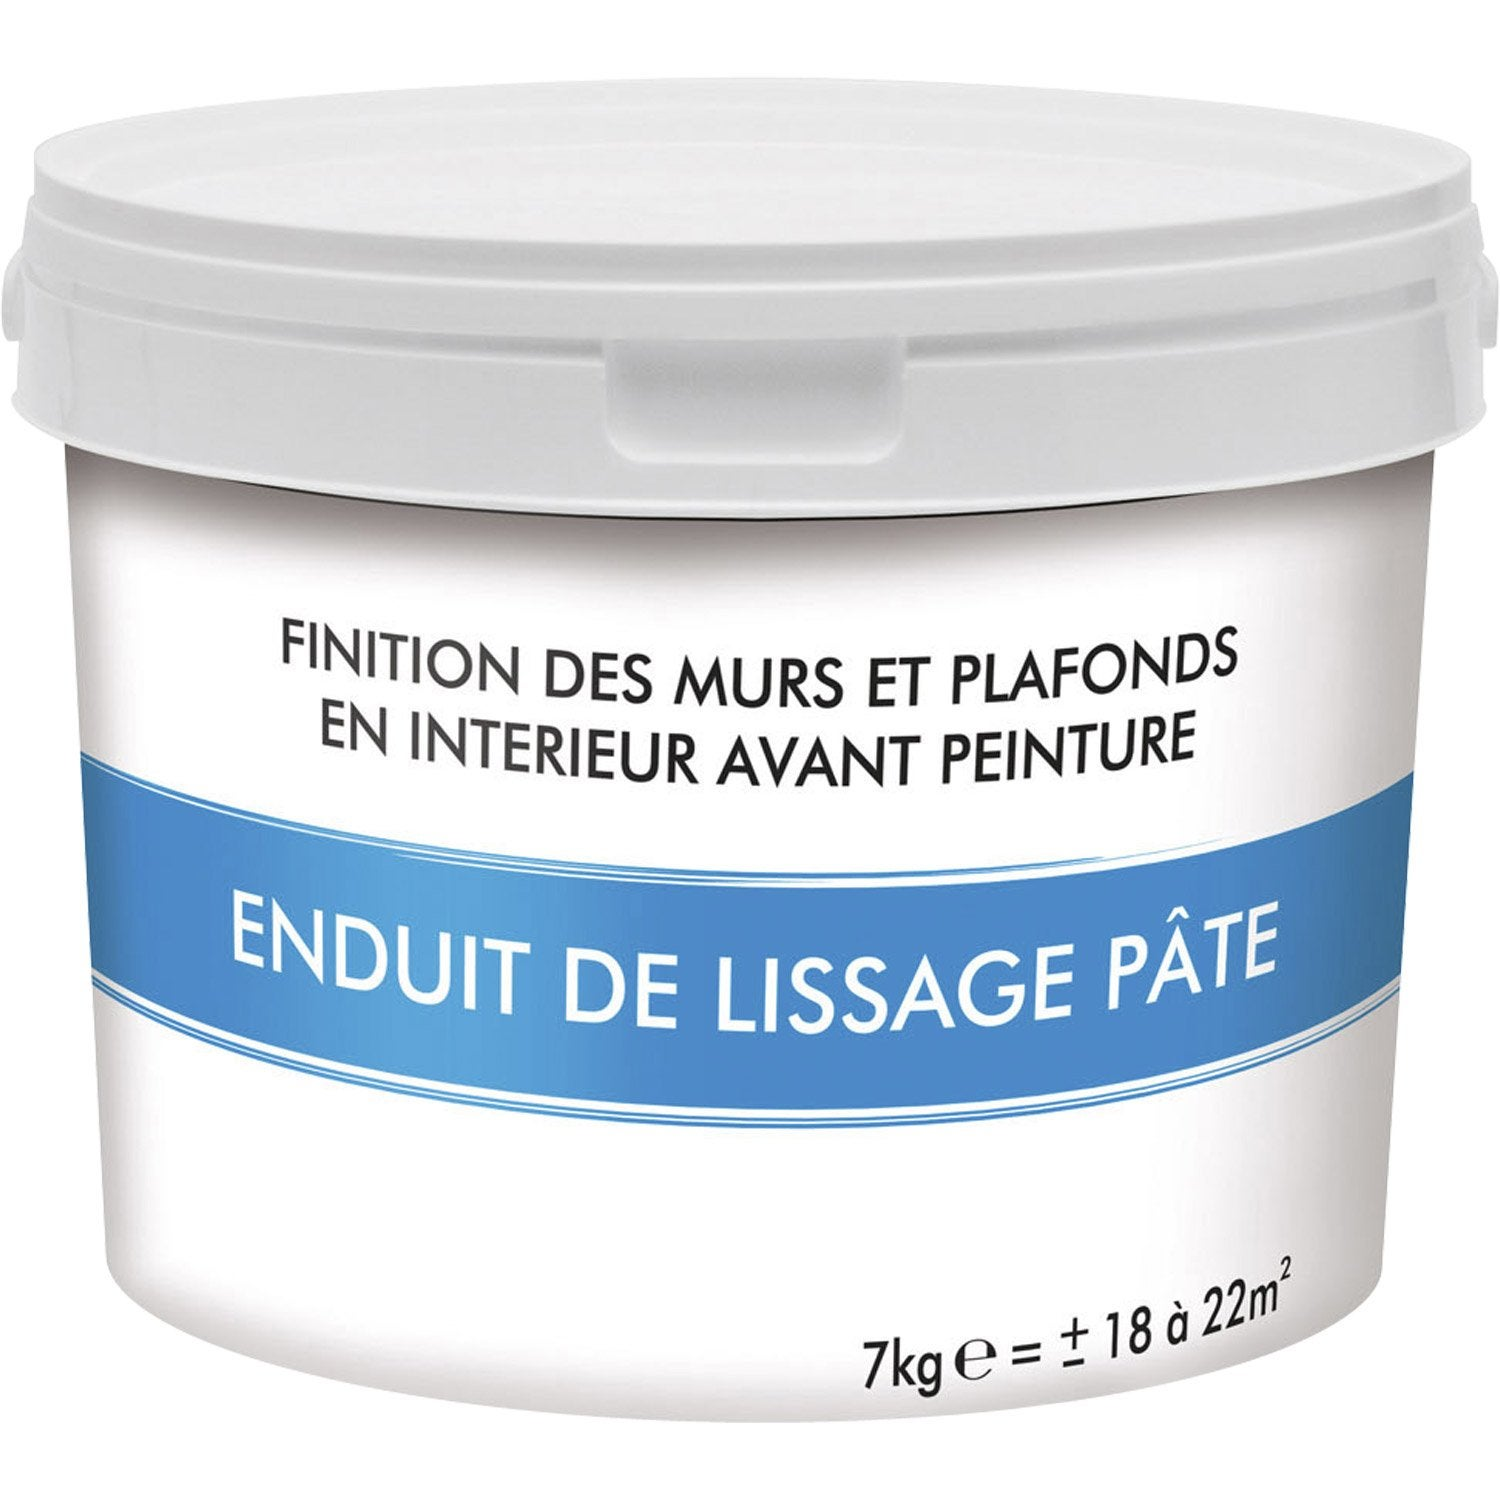 Enduit de lissage p te 7 kg leroy merlin for Video enduit de lissage